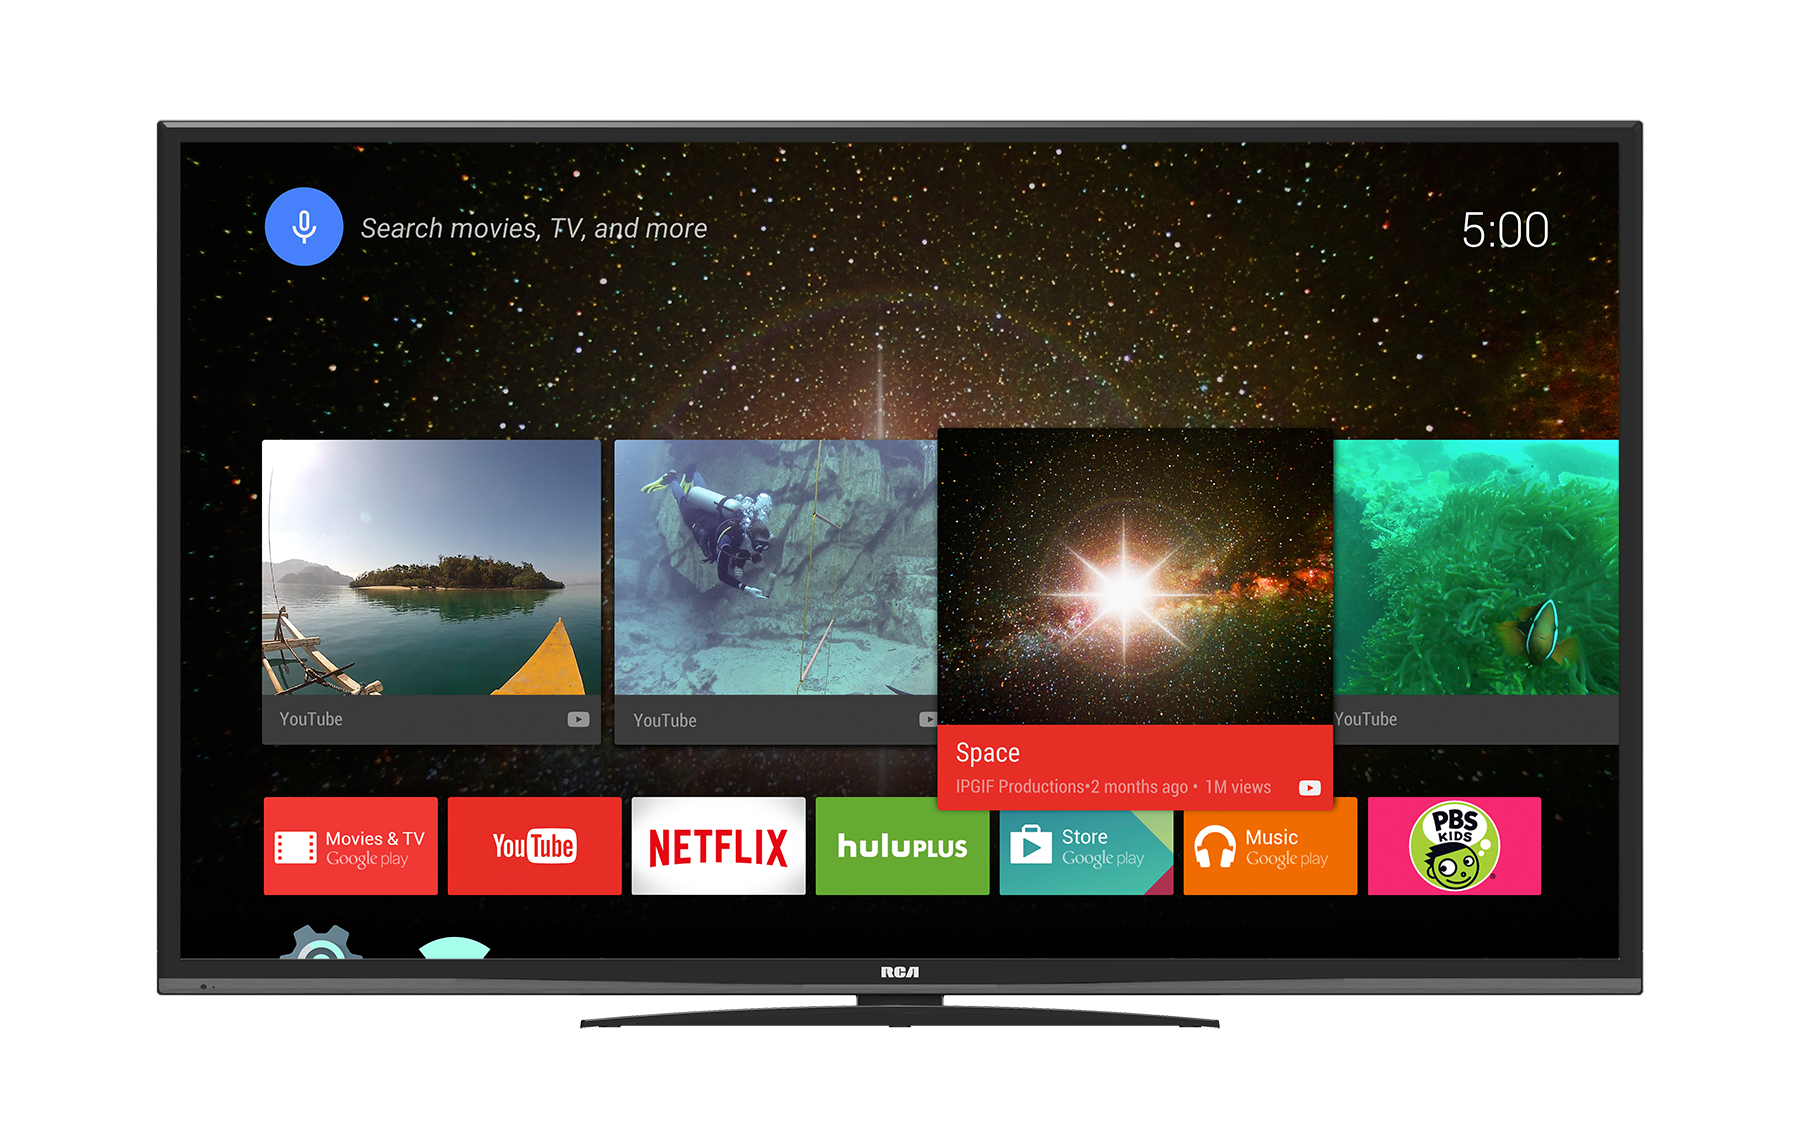 b49ae1d46fd You can pair an Android TV box with any TV to get Google smarts in your  set